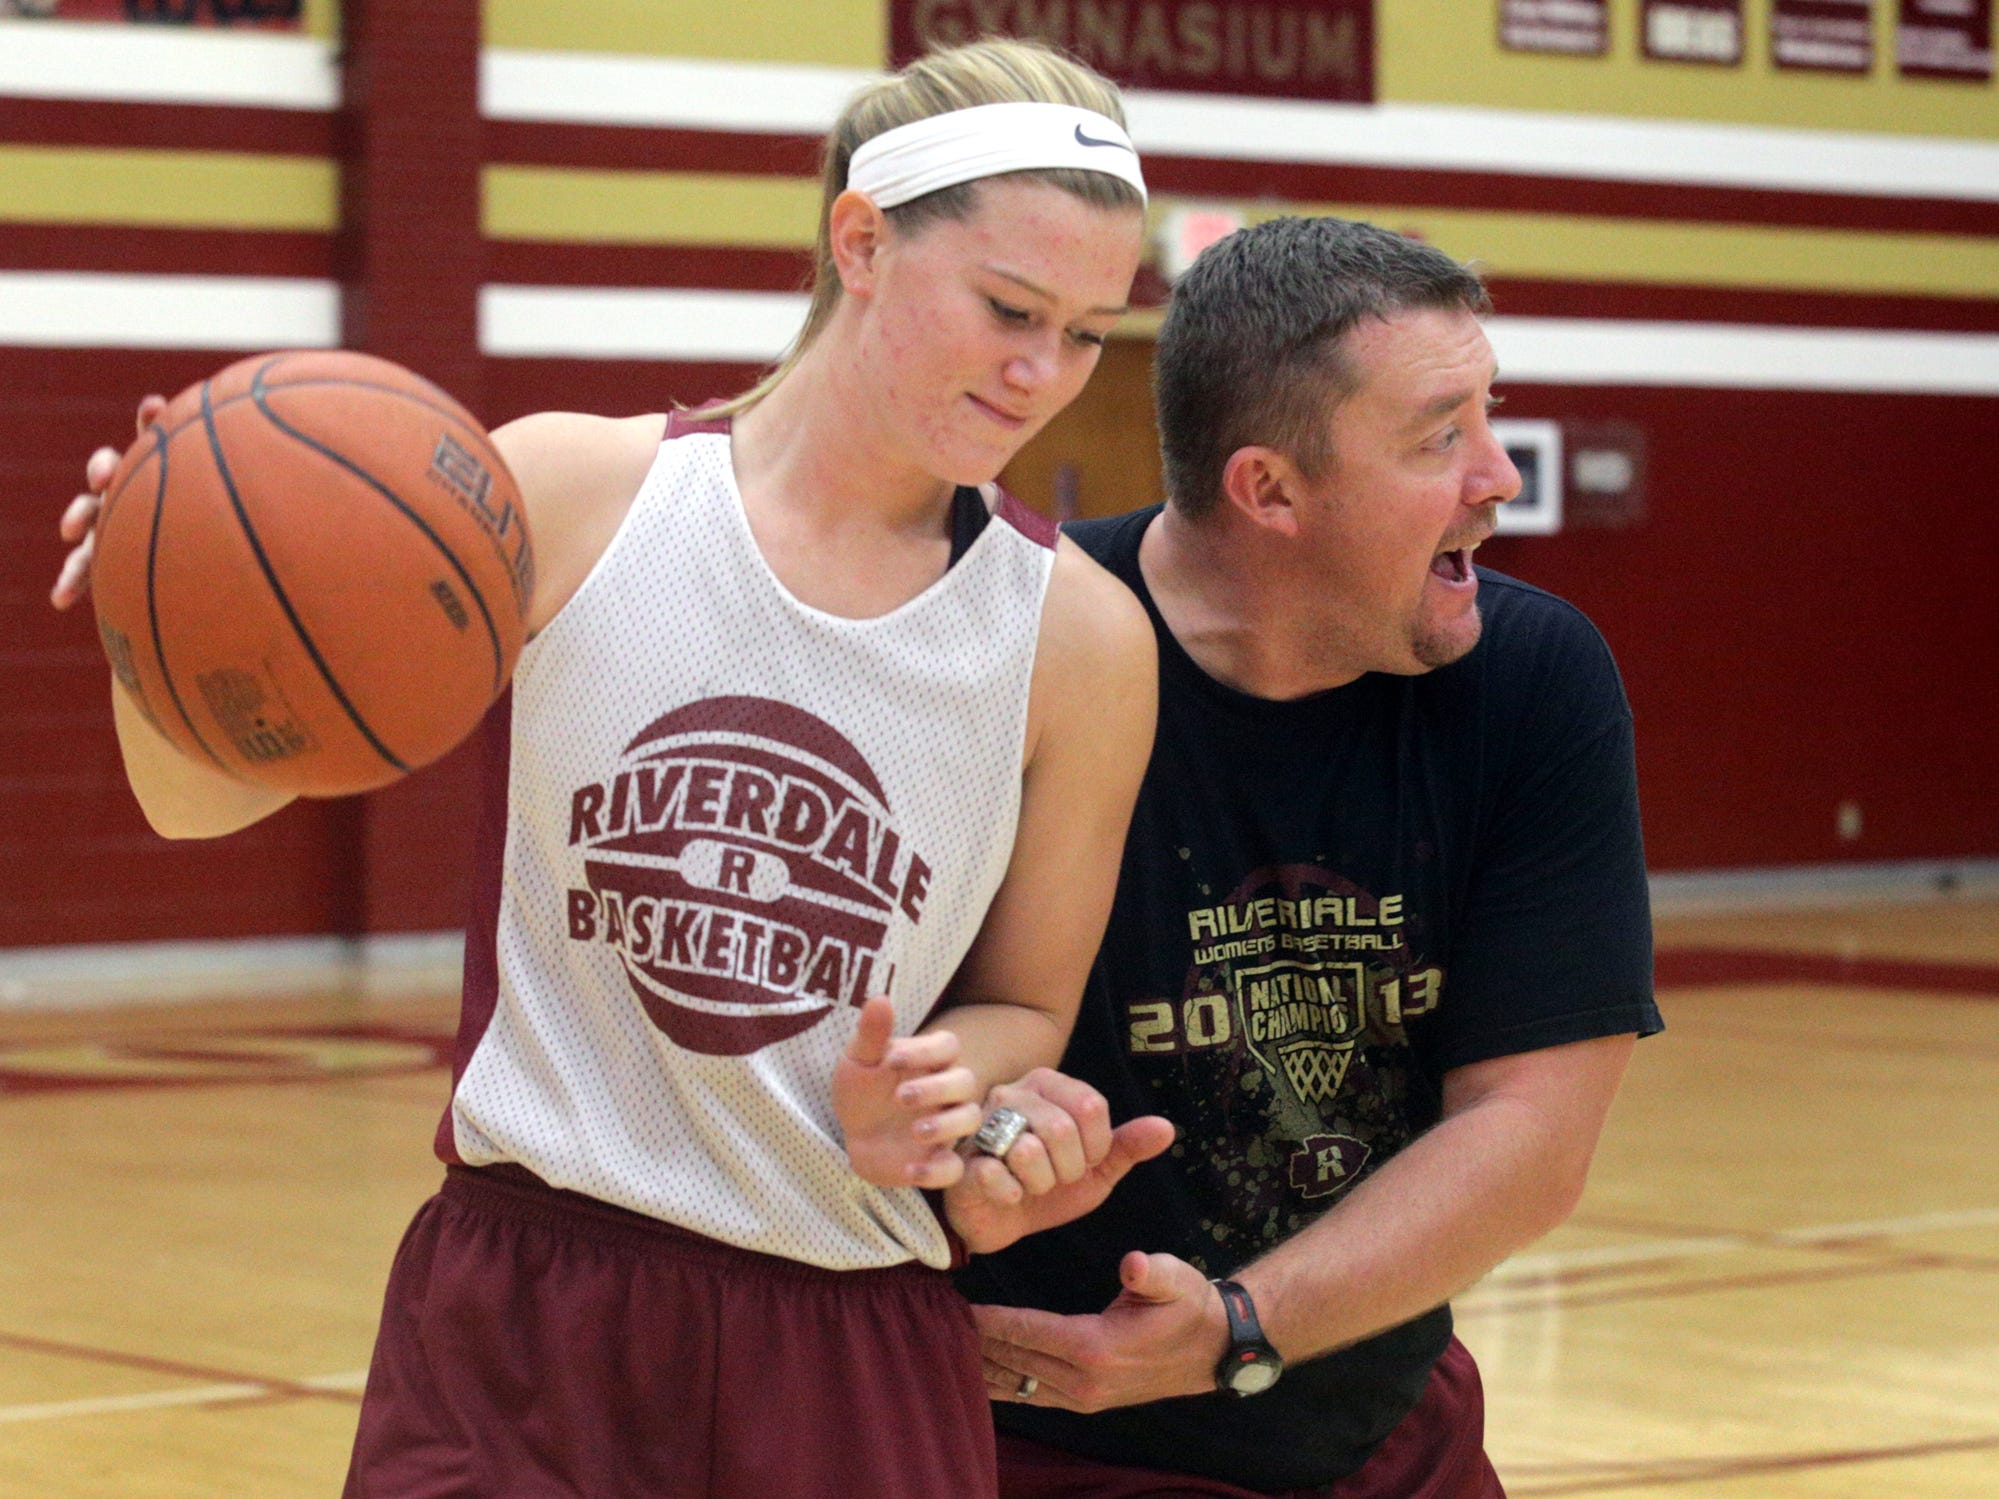 Former Riverdale standout Alexa Middleton works on a drill with then-Riverdale head coach Cory Barrett in October 2013.